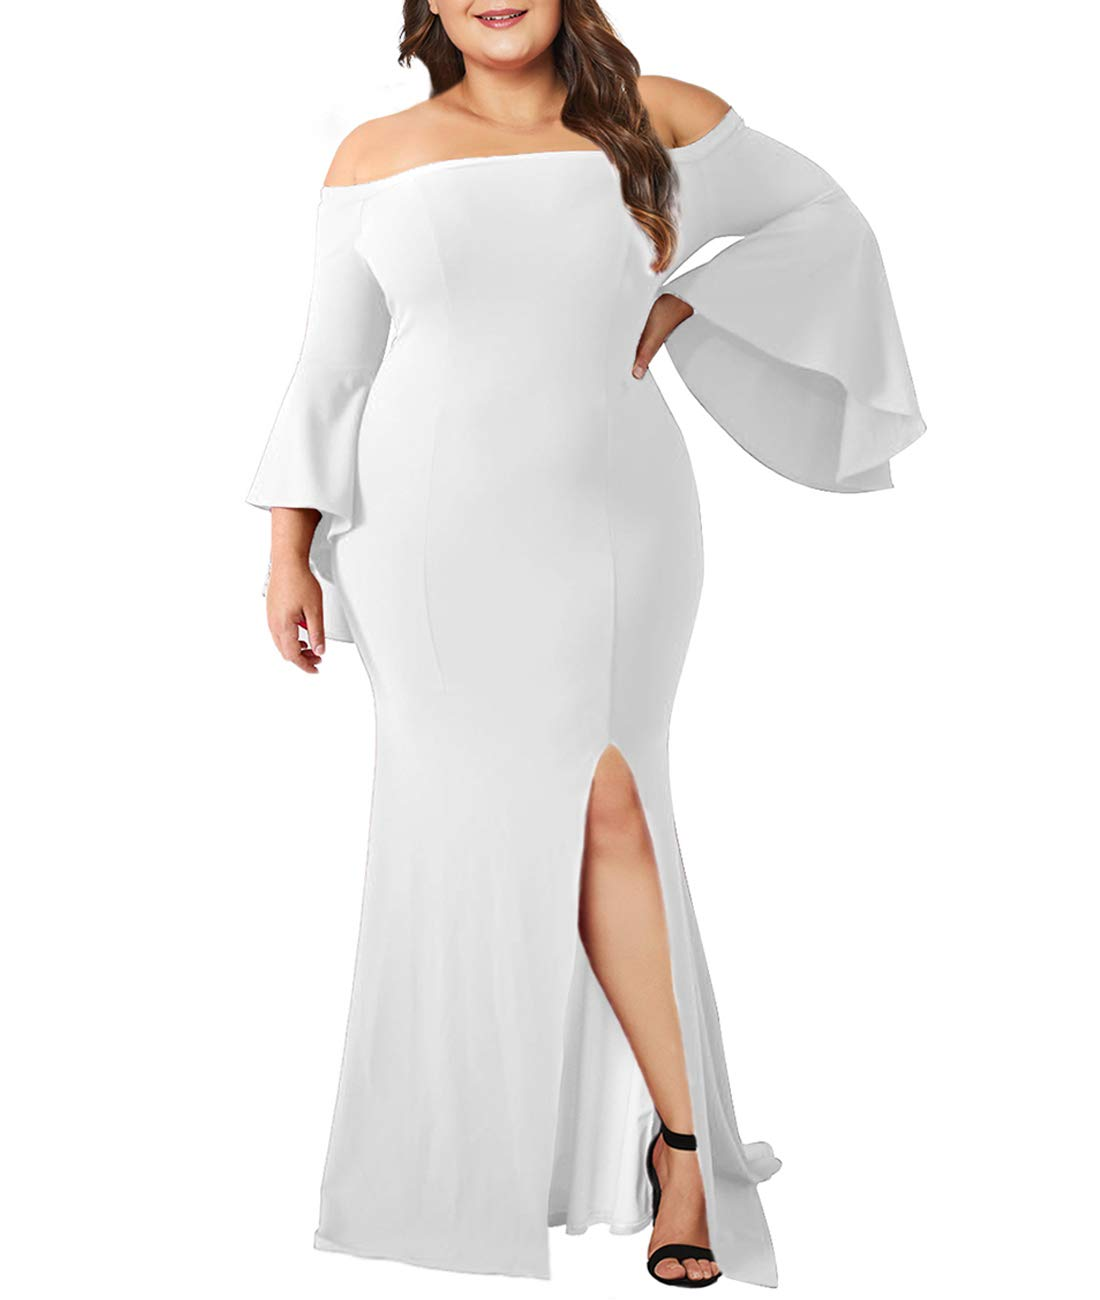 caa1ef8e04 Innerger Women Plus Size Off Shoulder Bodycon Party Dress Evening Formal  Gown White XXXXL